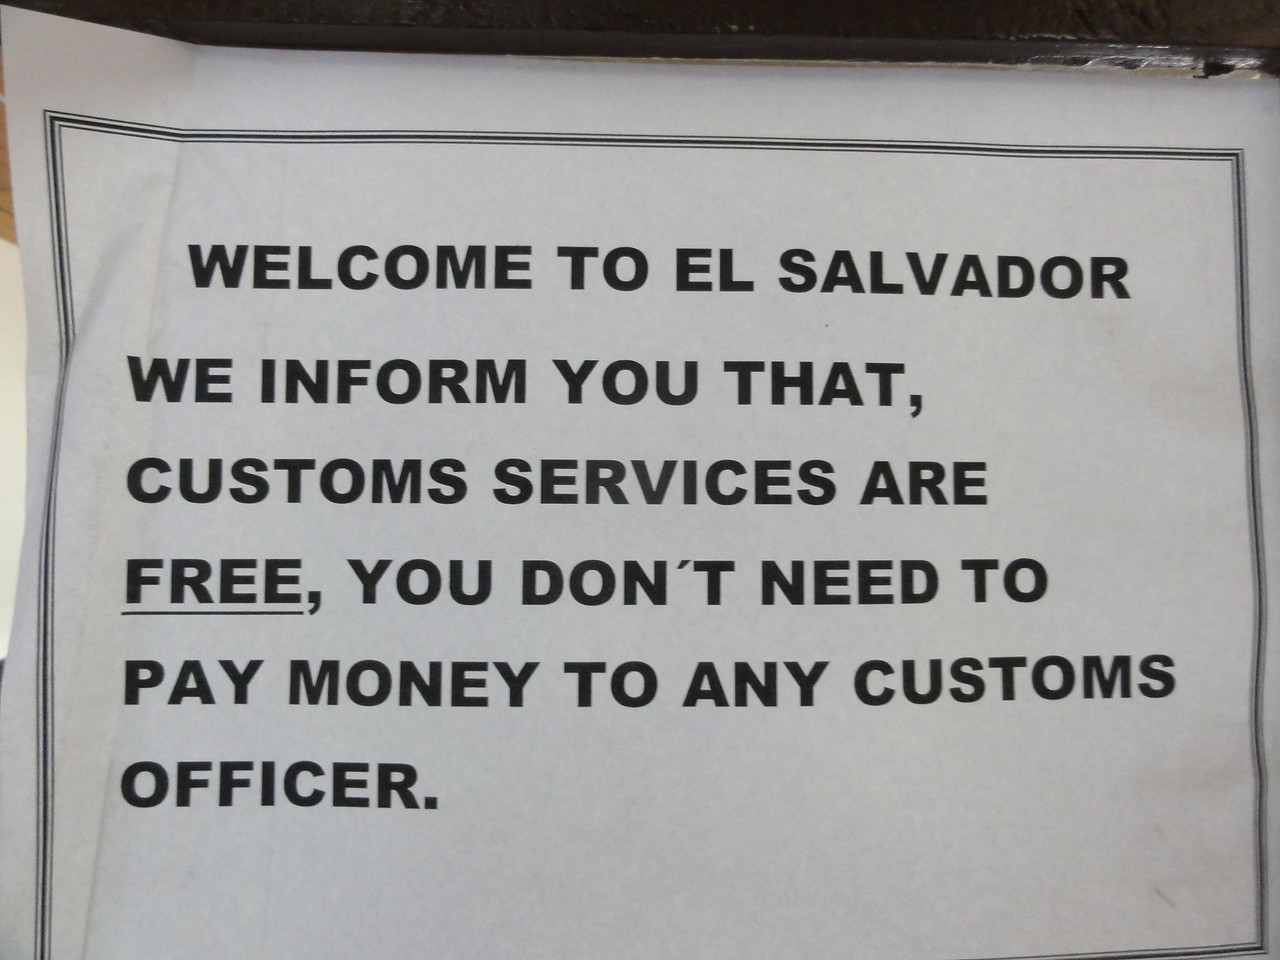 El Salvador Customs